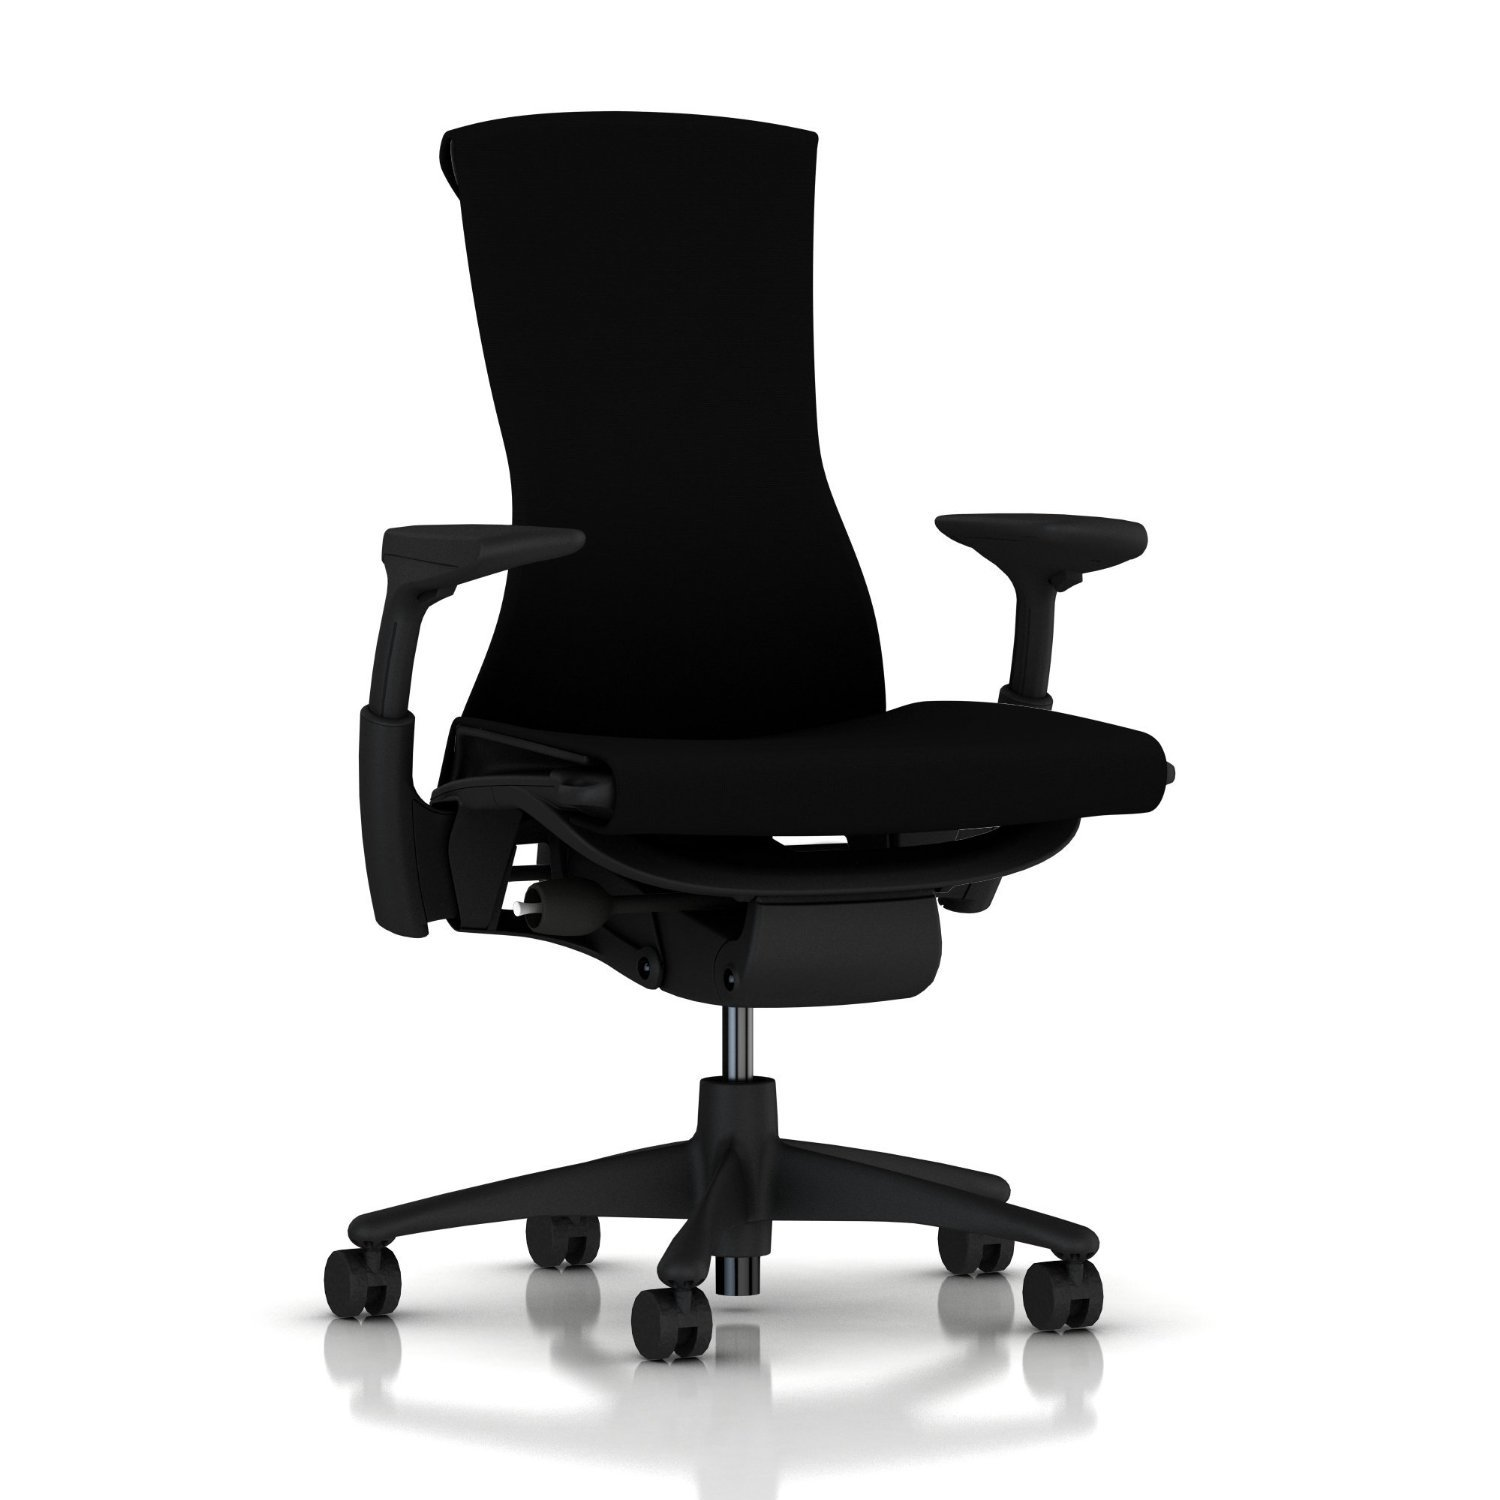 Herman Miller Embody Chair: Fully Adj Arms - Graphite Frame/Base - Standard Carpet Casters